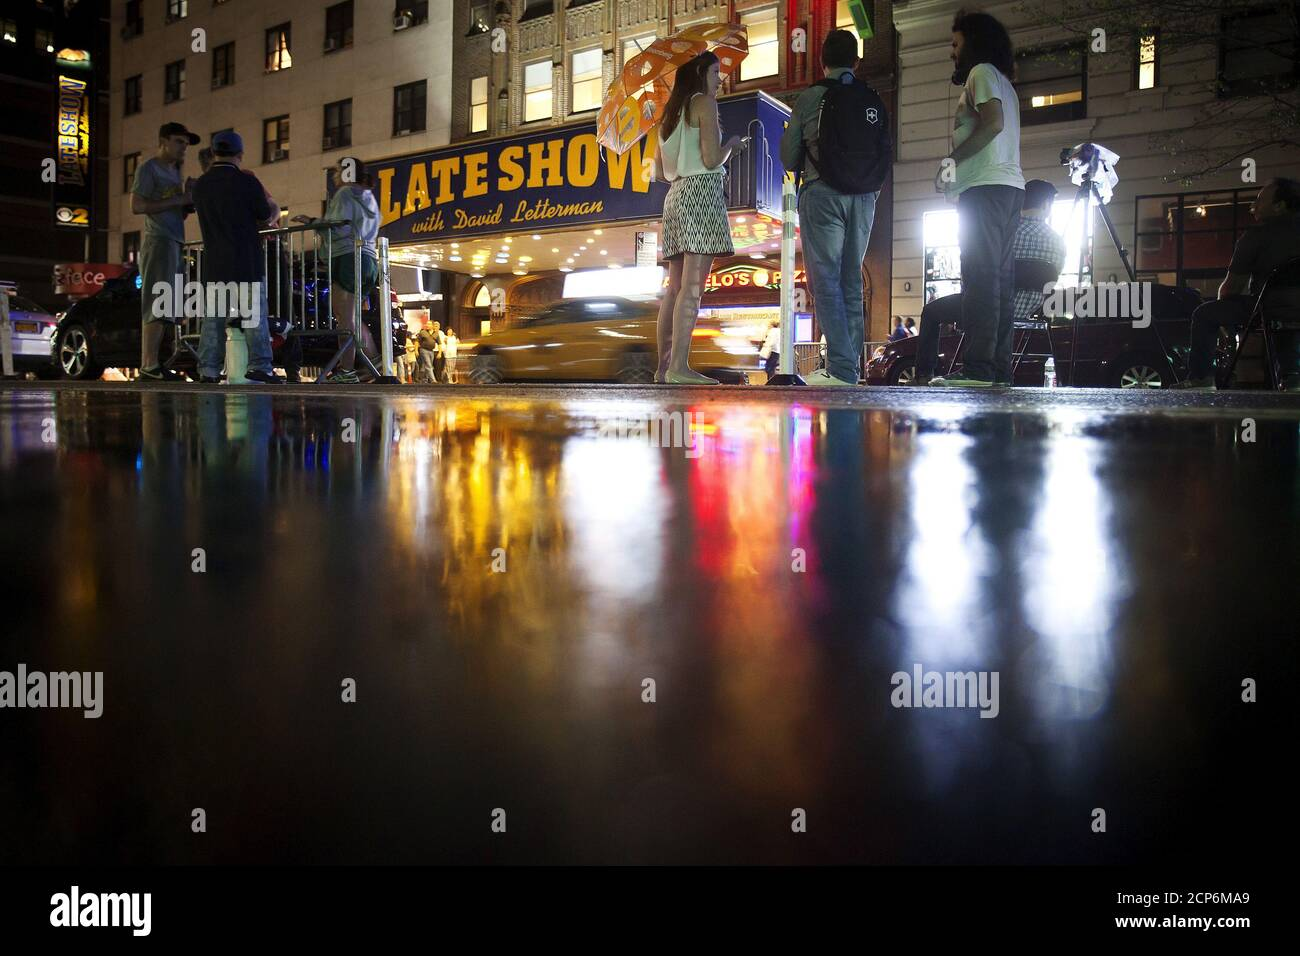 """People stand and wait for a sign crew to remove the marquee across the street from the Ed Sullivan Theater where """"The Late Show"""" with David Letterman used to tape in the Manhattan borough New York May 27, 2015. The taping and broadcast of the final edition of """"The Late Show"""" was May 20, and workers are now slowly transforming the theater for the show's new host Stephen Colbert which will premiere on September 8, 2015.   REUTERS/Carlo Allegri Stock Photo"""